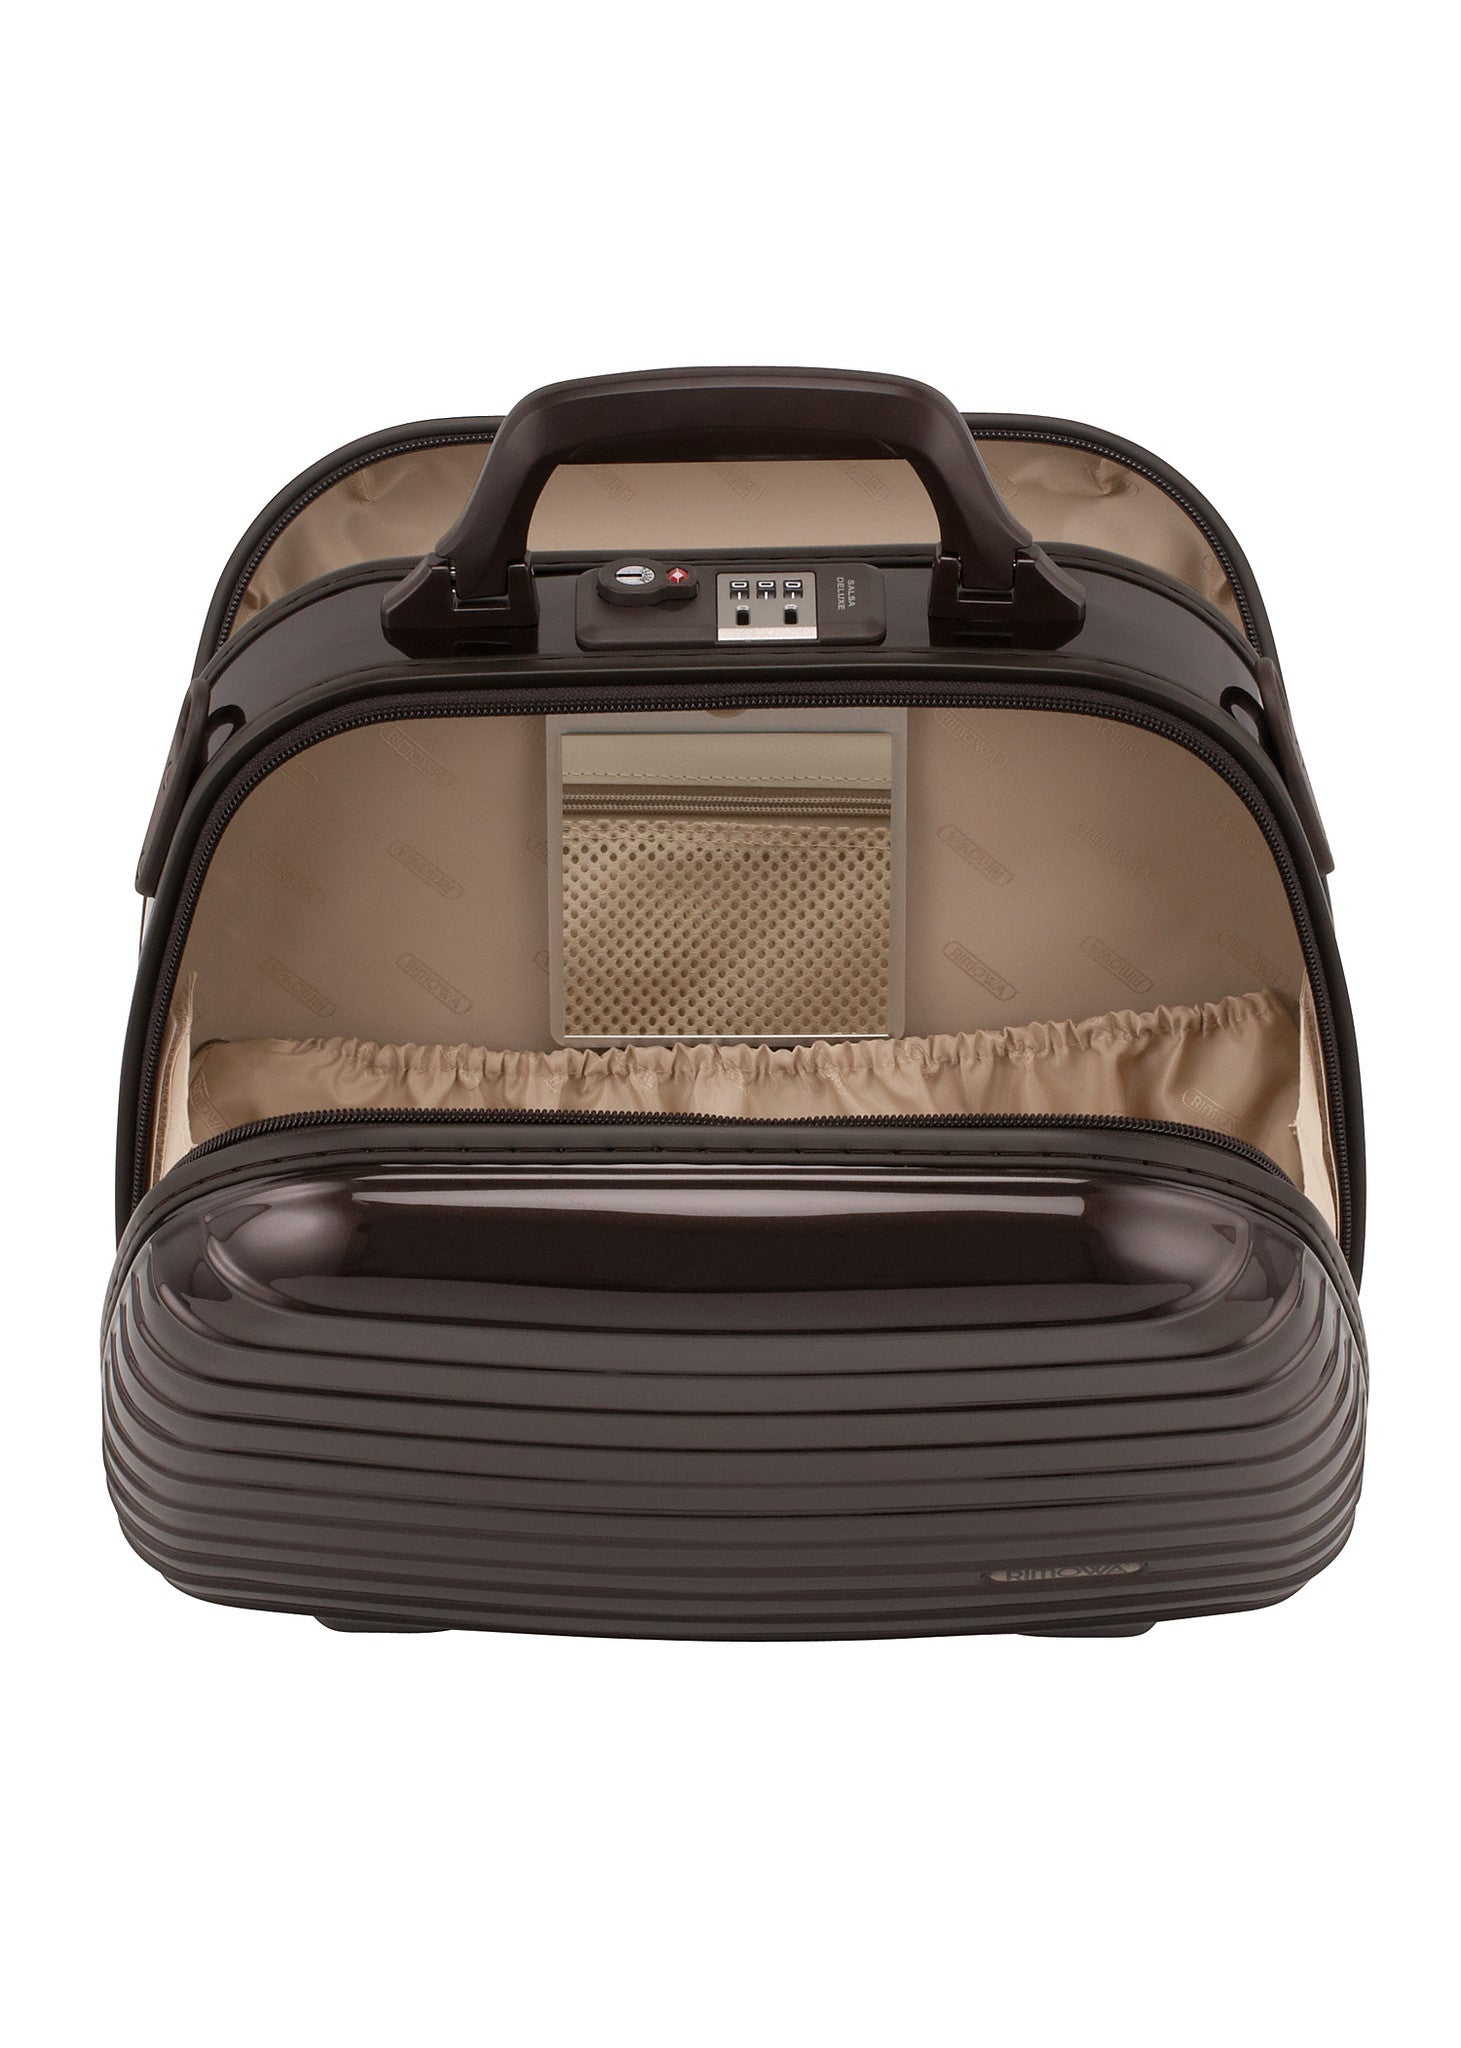 Rimowa Salsa Deluxe Beauty Case - Brown | MEGO